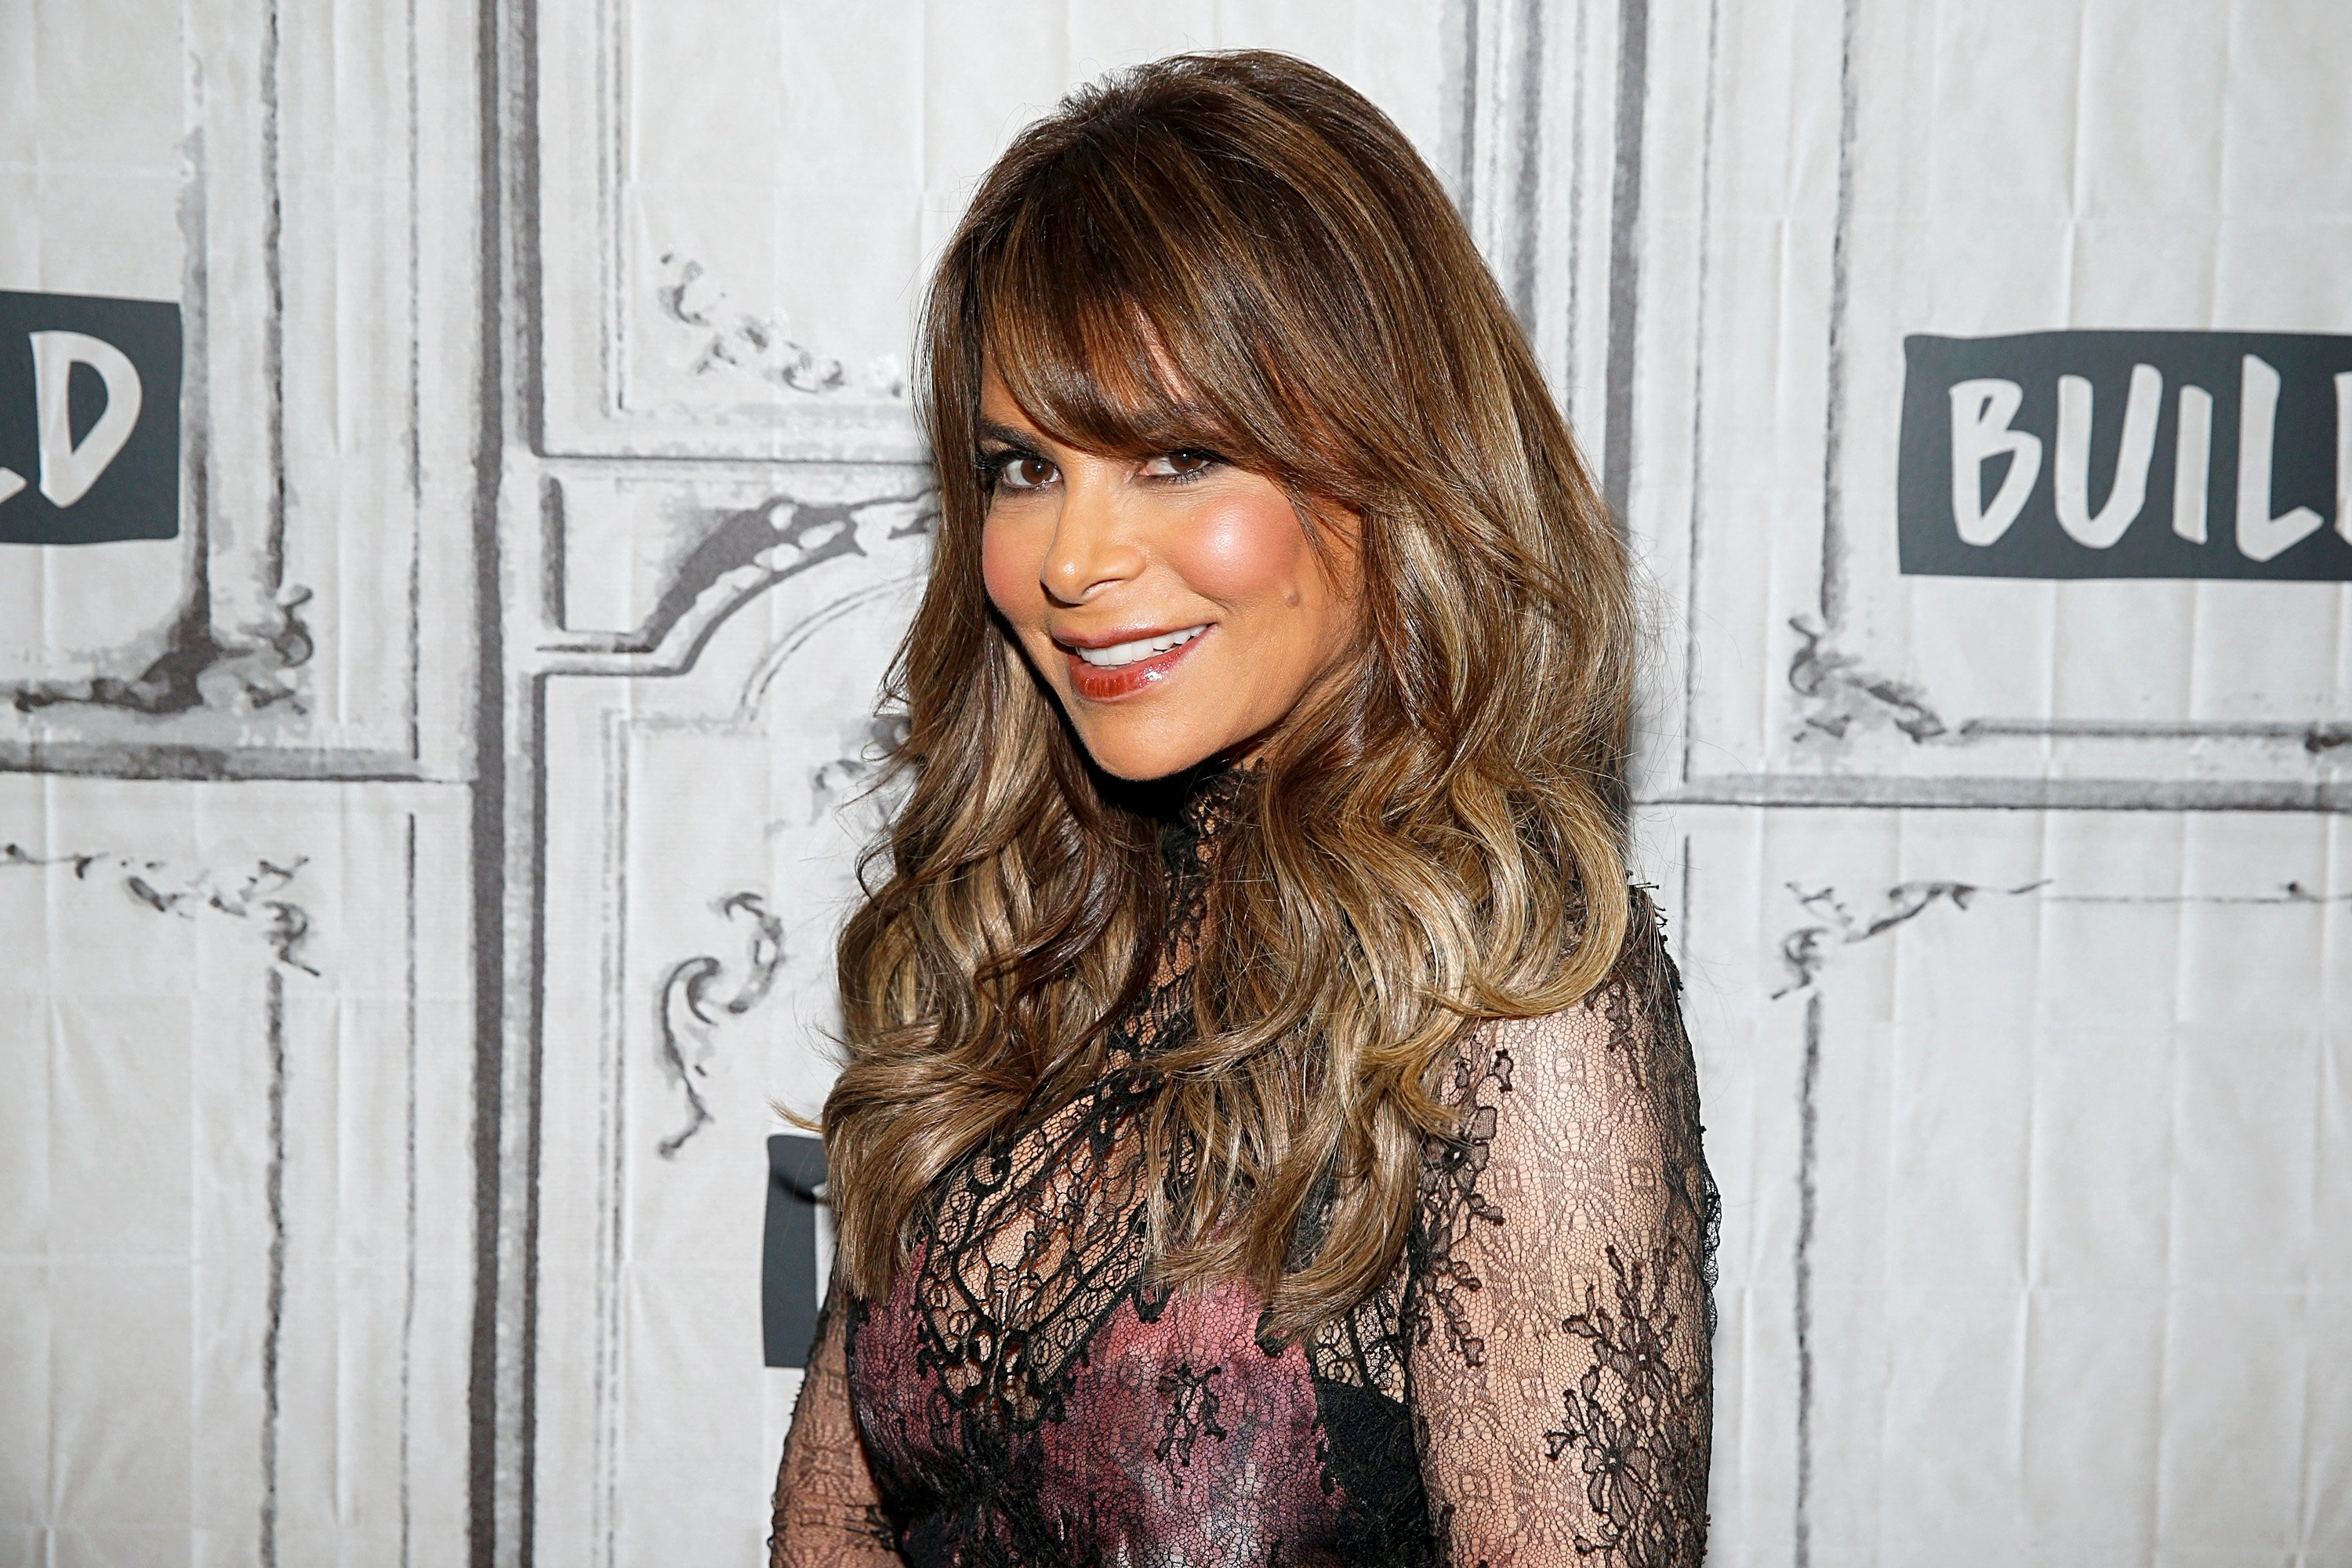 Paula Abdul attends a Build Series in New York City on October 3, 2019 | Photo: Getty Images